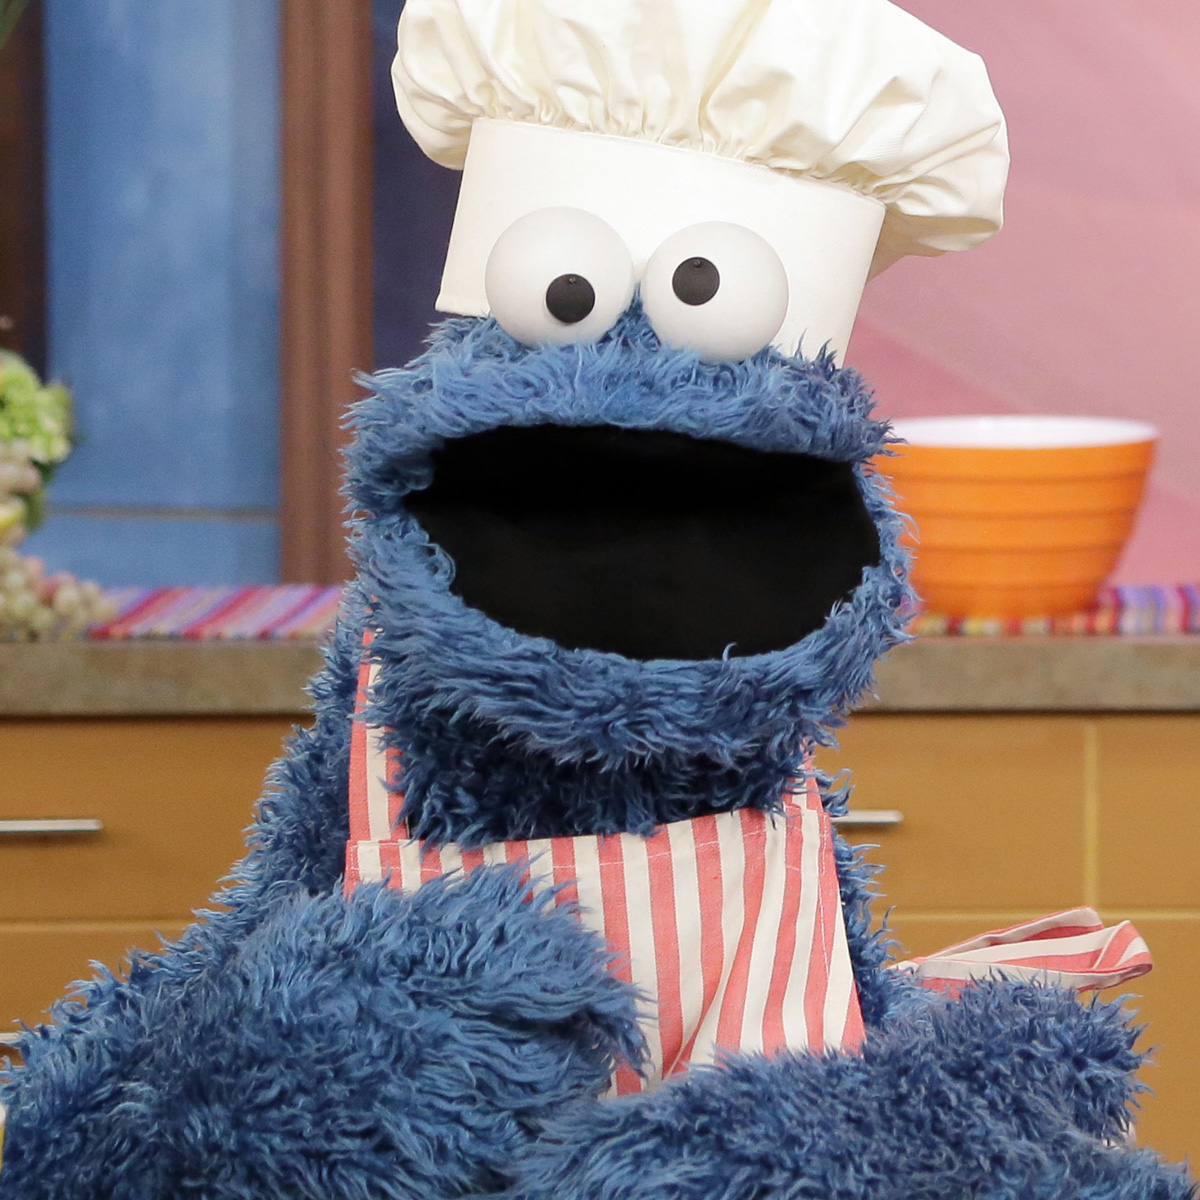 How To Make A Char Cookie Rie Board According To Cookie Monster